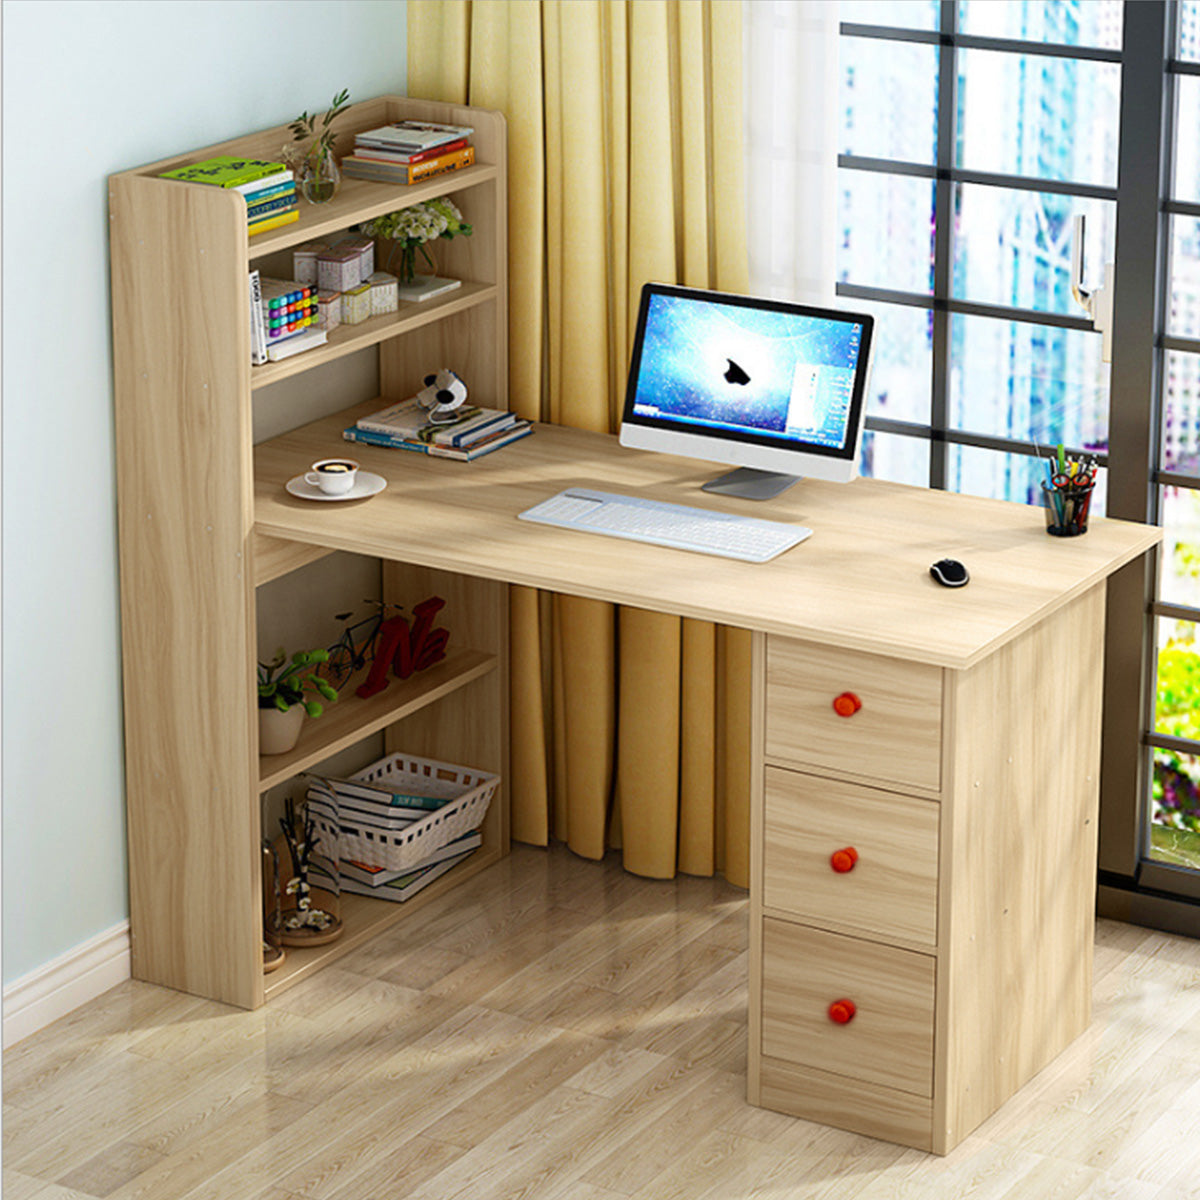 Image of: Kawachigroup Com Kawachi Compact Computer Laptop Desk Study Table With 4 Shelves Storage 3 Drawers Kw13 Beige